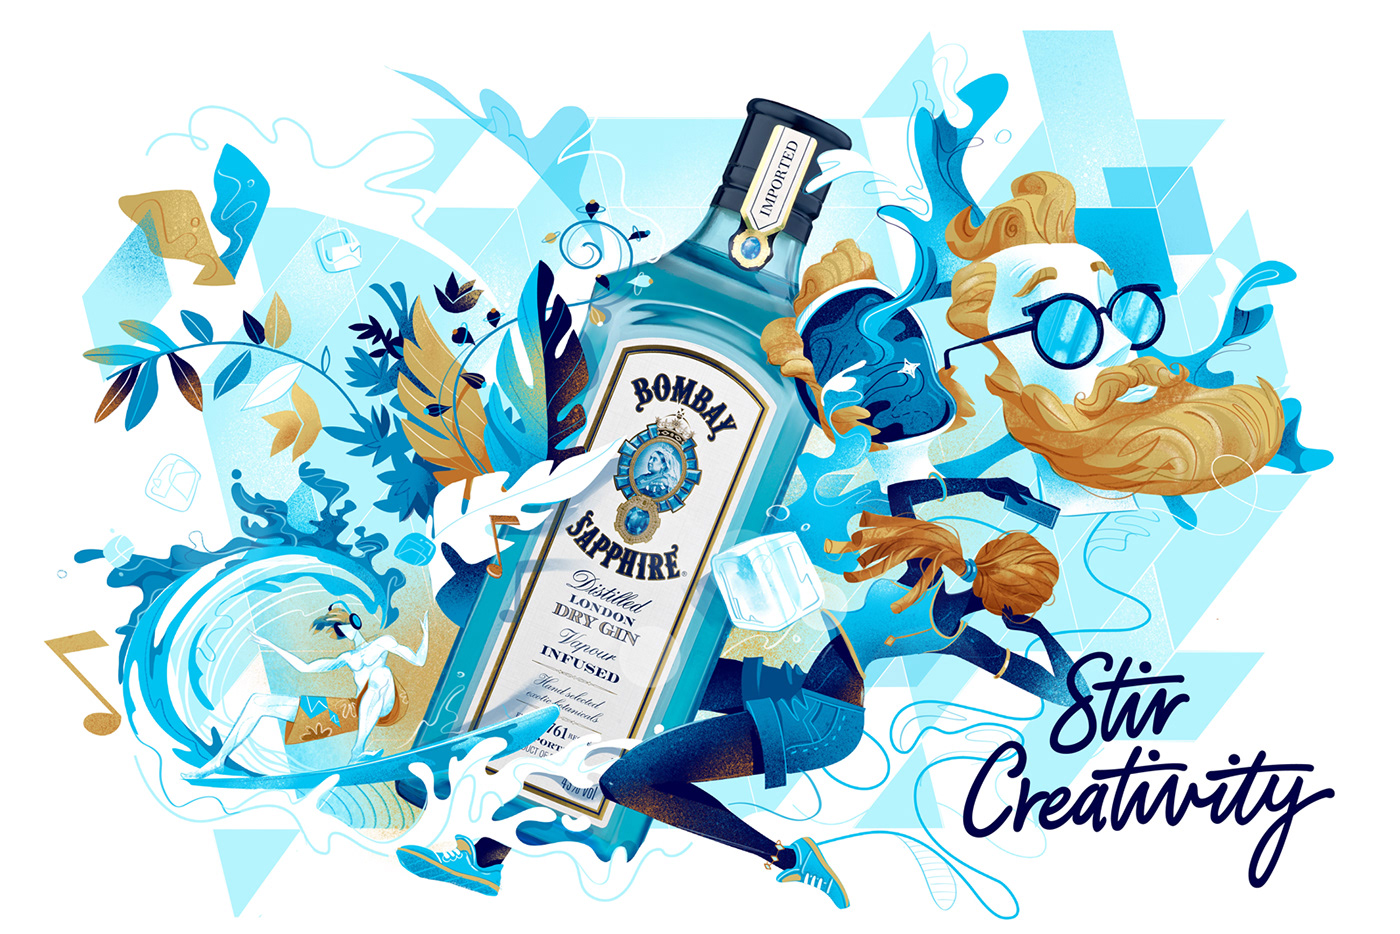 brand Creativity ILLUSTRATION  Viral cool fresh Drawing  wow lifestyle Hipster